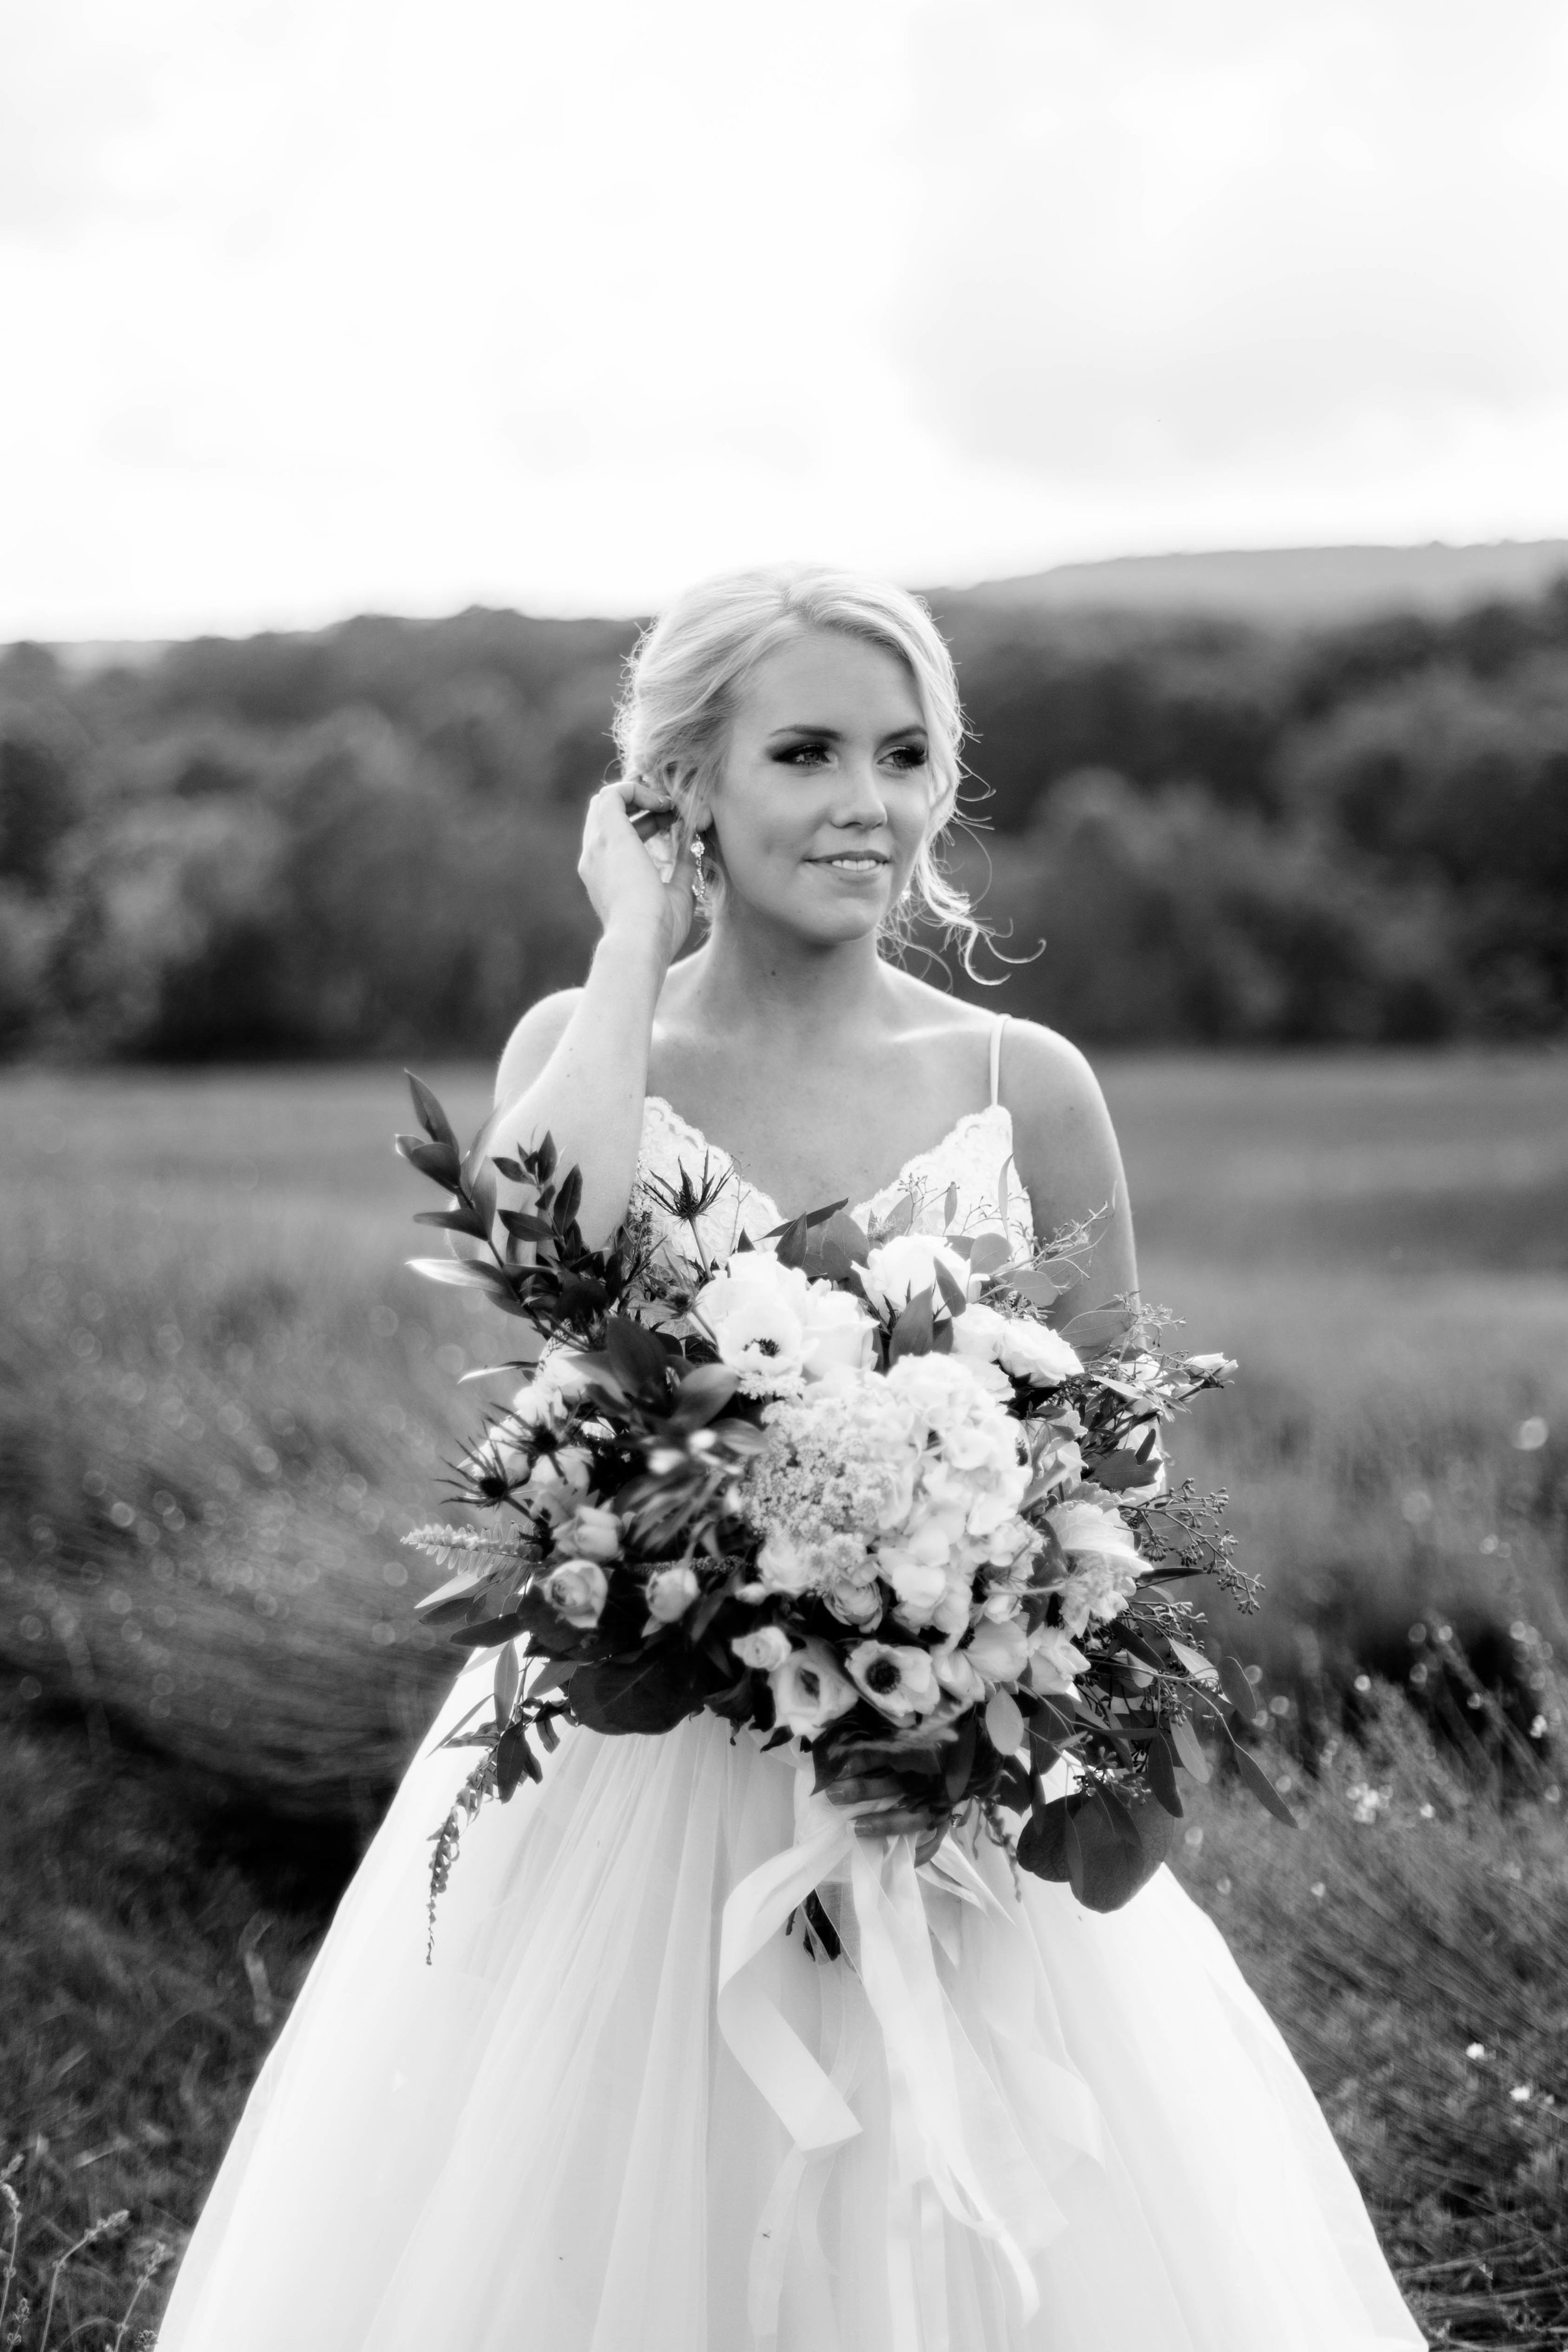 nicole-daacke-photography-intimate-wedding-in-a-lavender-field-washington-state-wedding-photographer-intimate-elopement-golden-lavender-field-wedding-photos-29.jpg